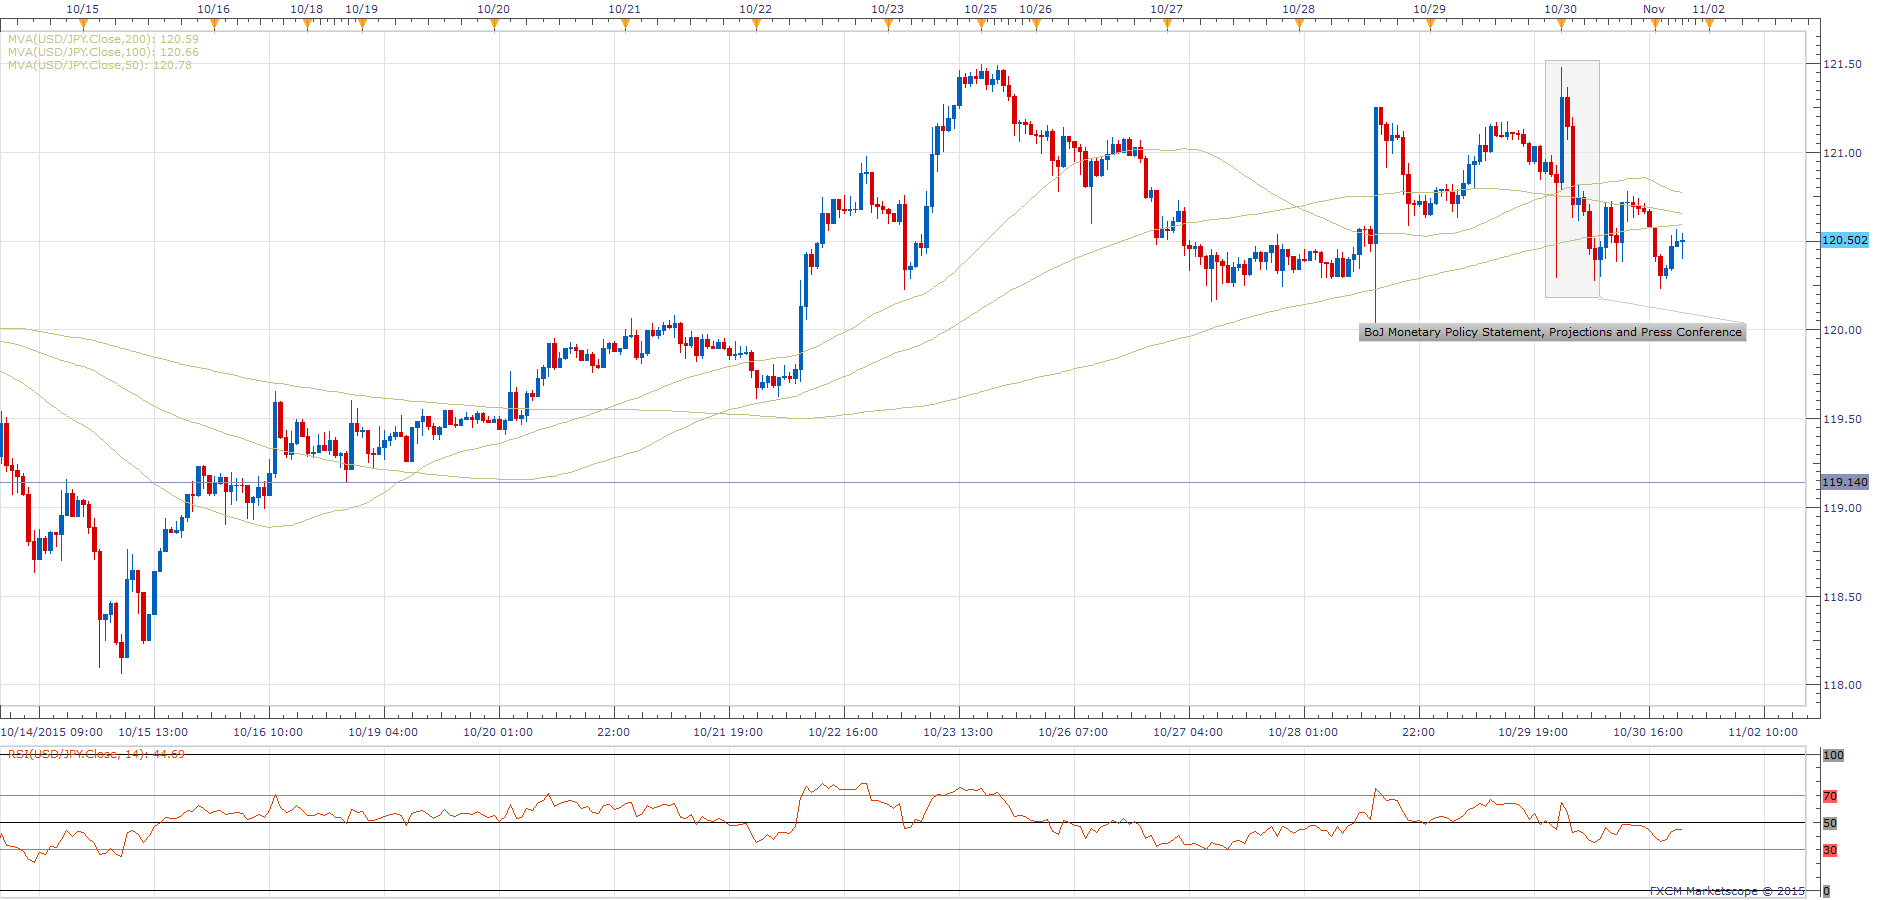 USD/JPY - Hourly Chart